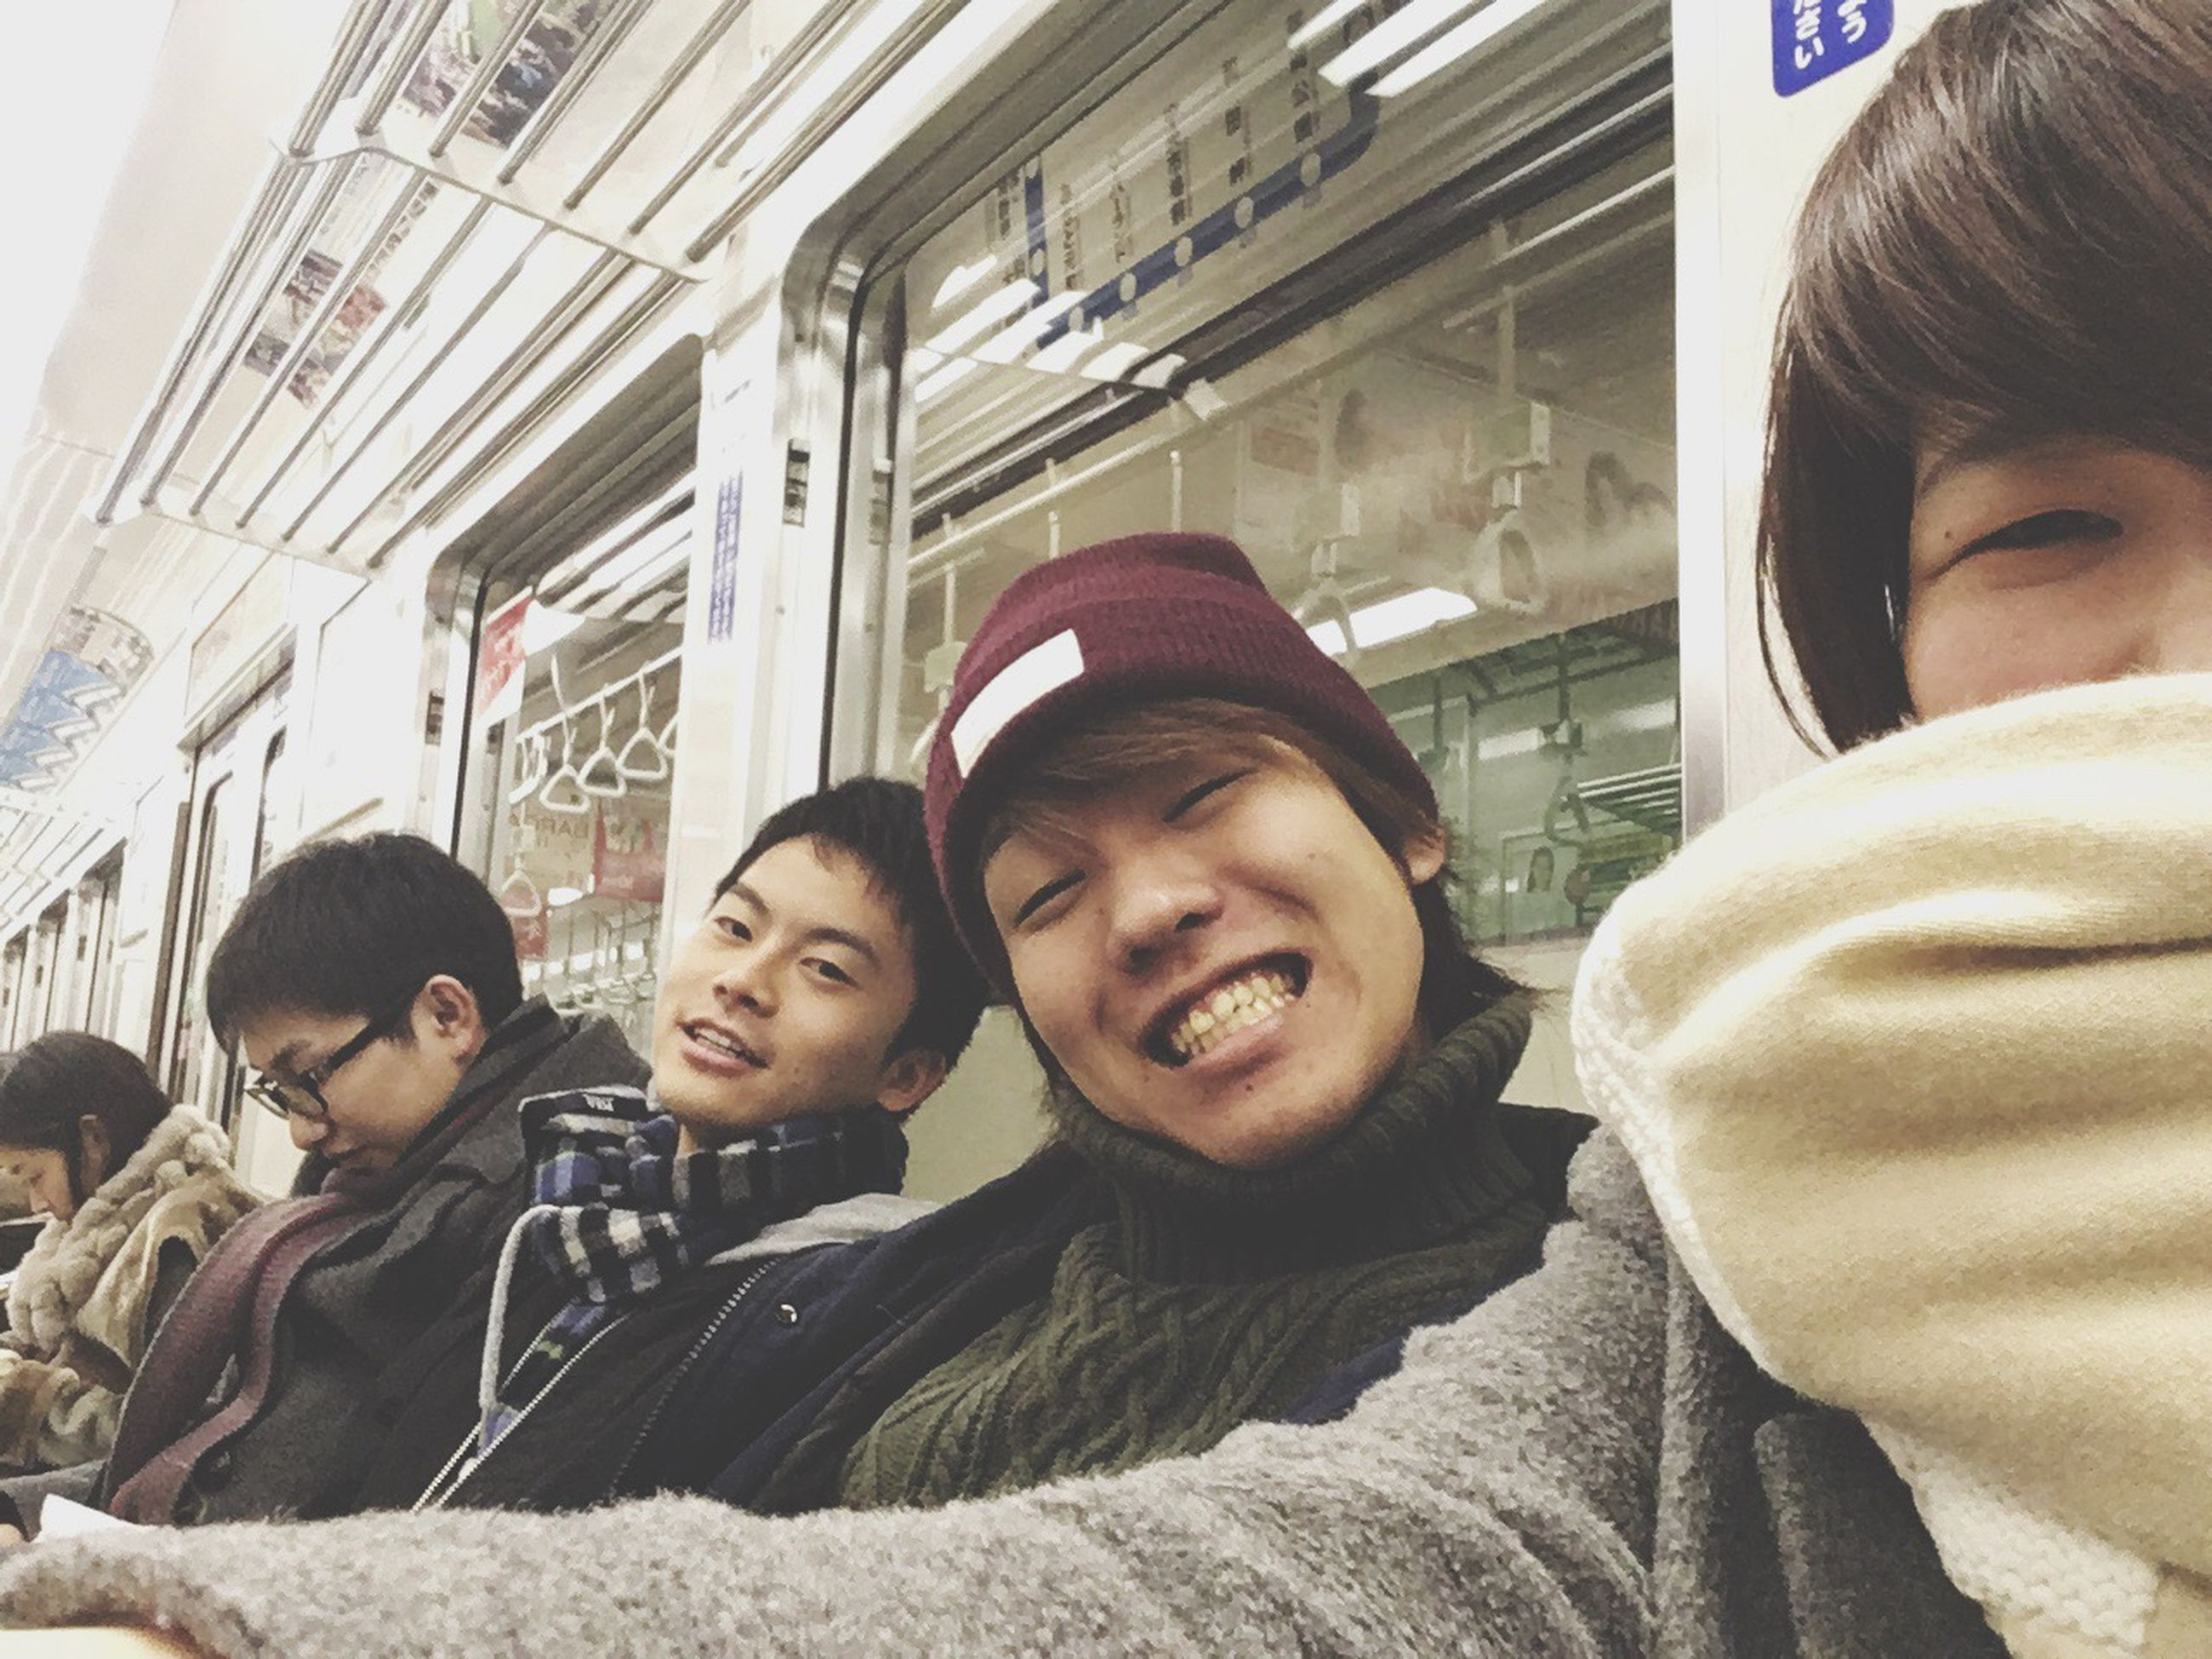 young adult, travel, adults only, passenger, togetherness, adult, young women, friendship, subway train, people, indoors, public transportation, women, men, day, human hand, headwear